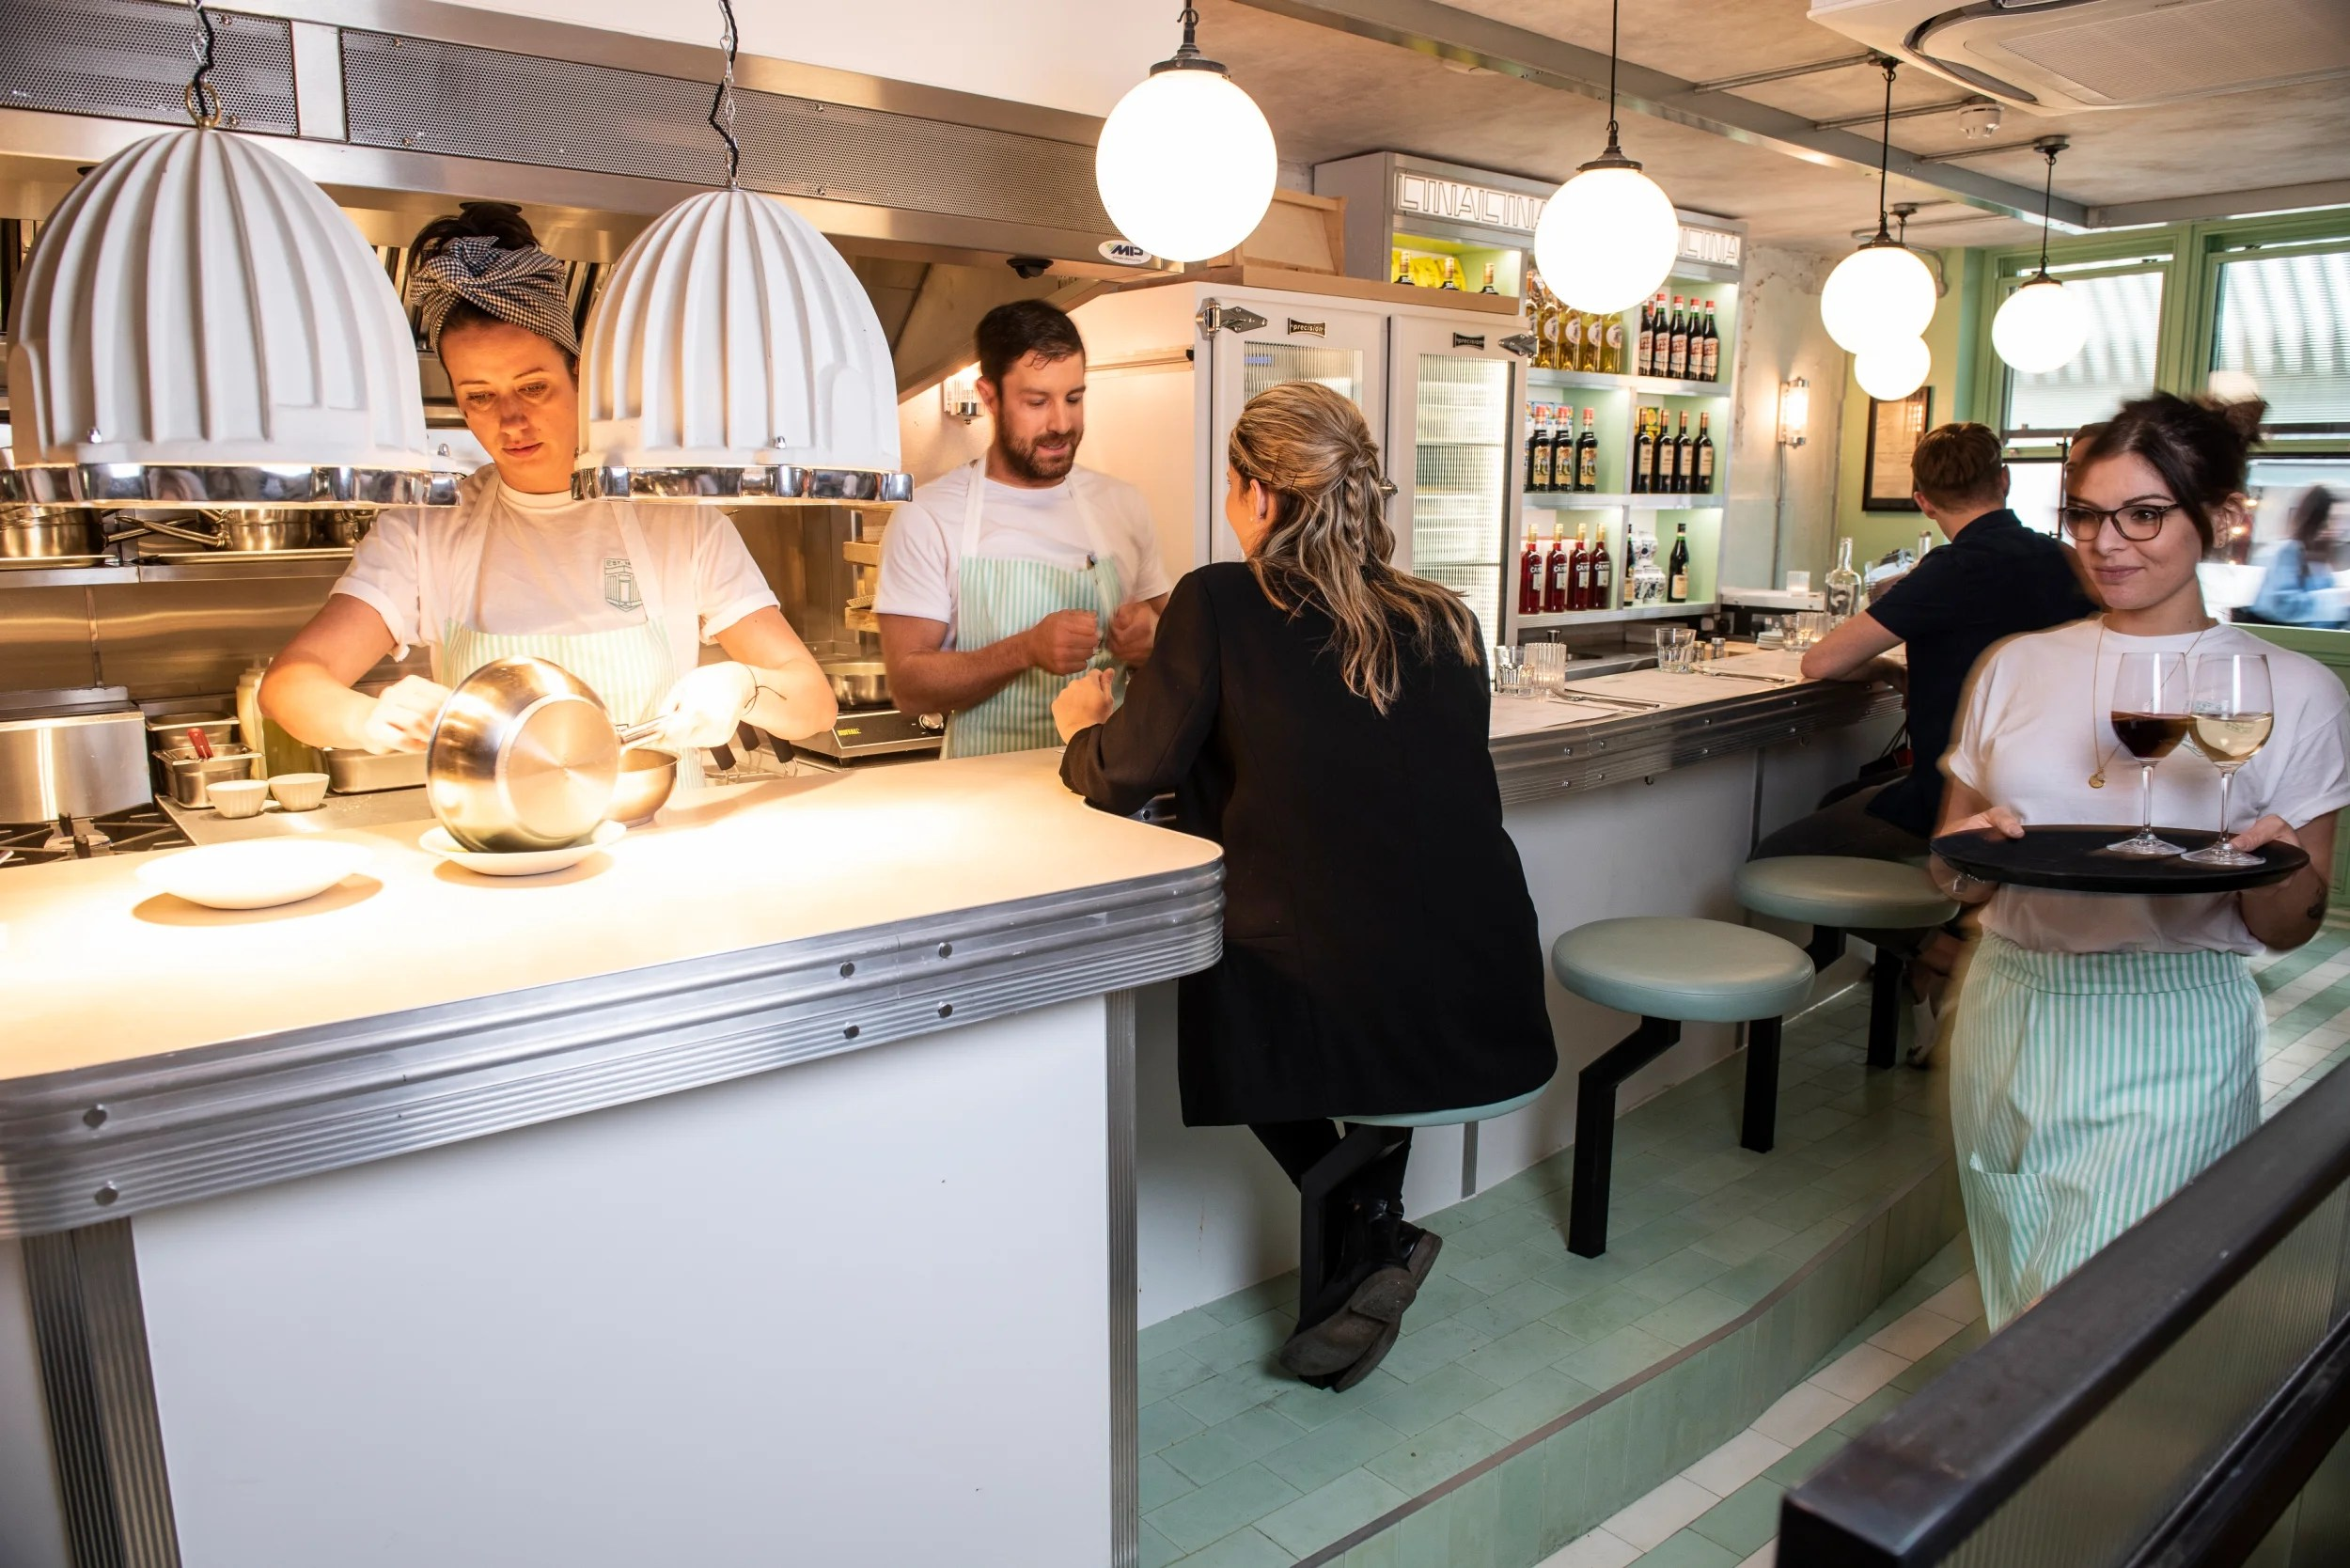 Resturant Stores Lina Stores Review Pasta Masters Could Become A Soho Institution